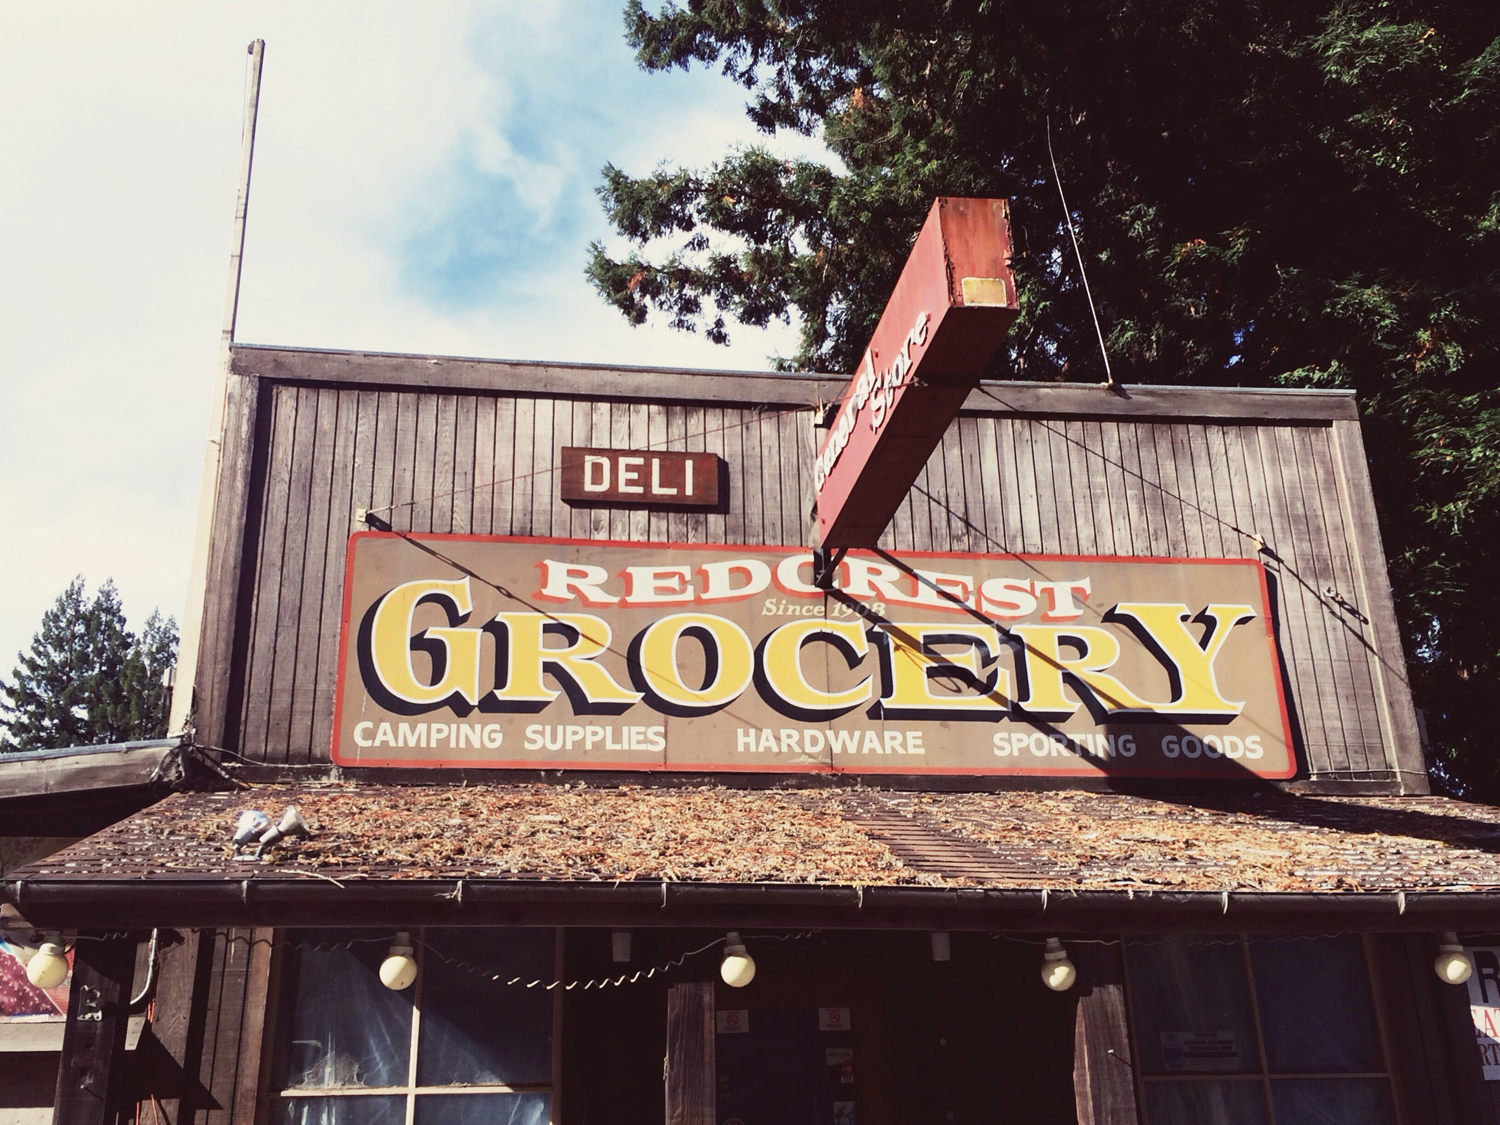 Abandoned Grocery store in Redcrest, CA